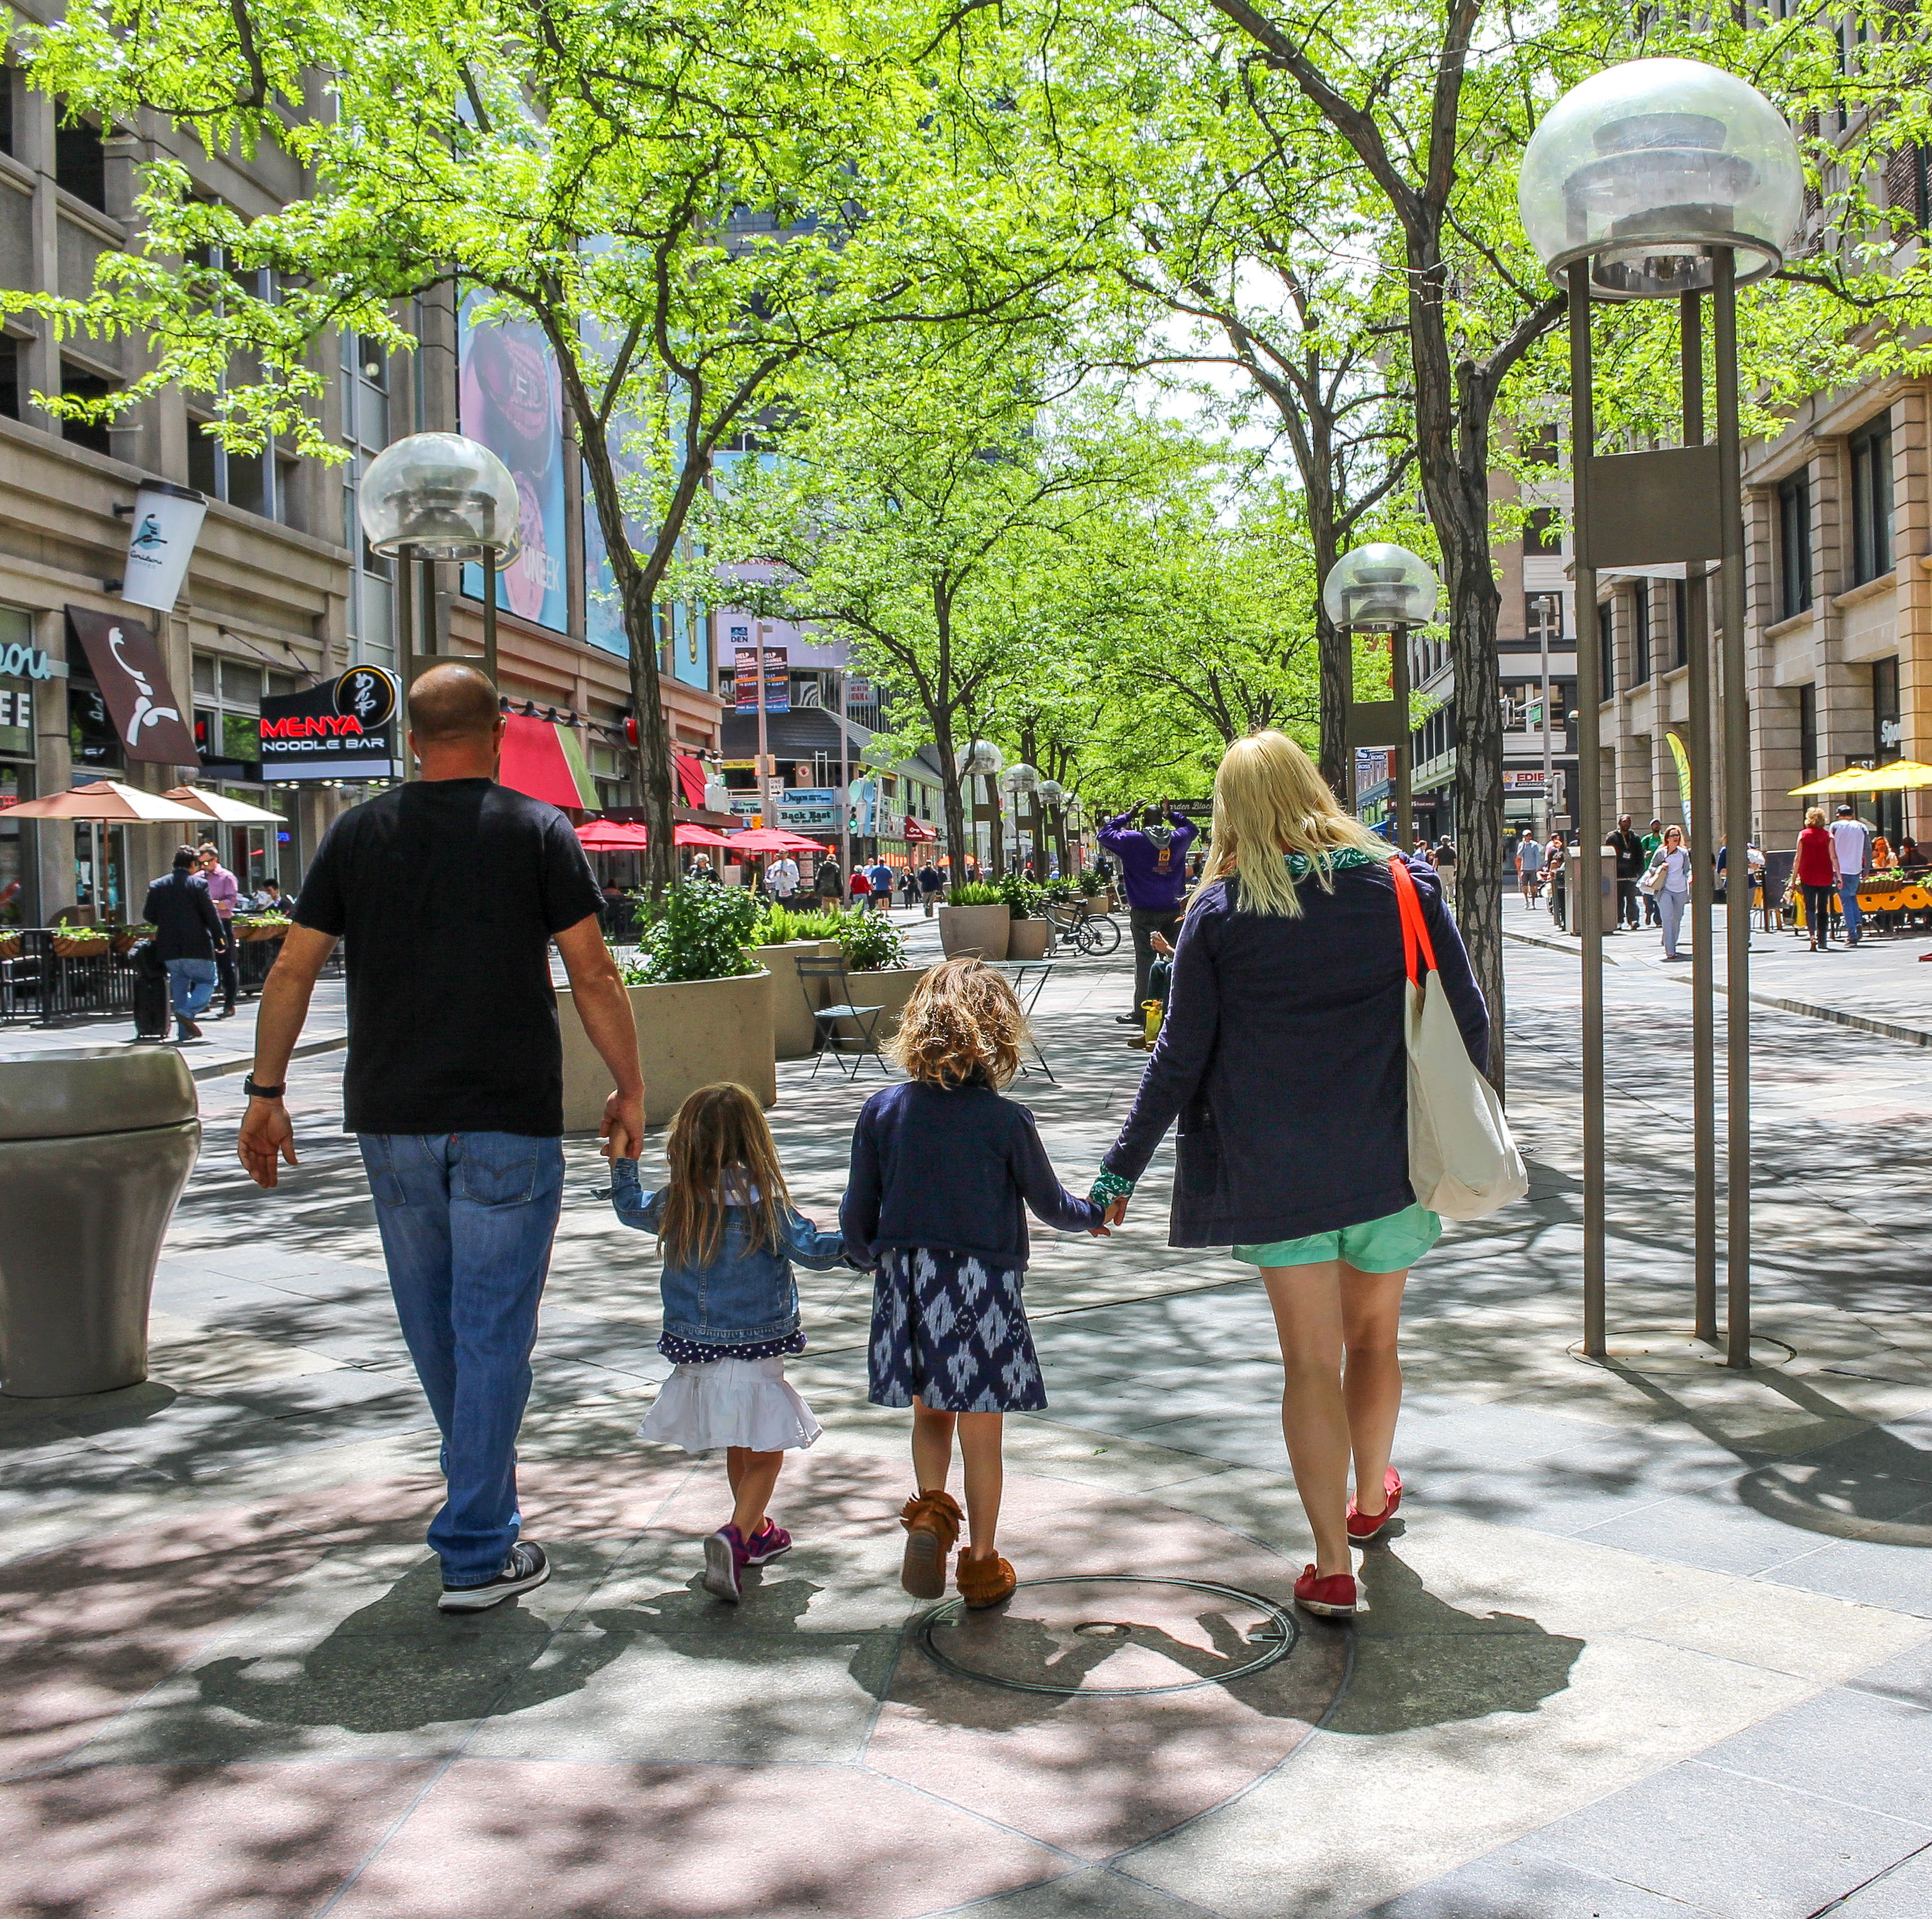 tours in Denver with Denver Walking Tours 16th Street Mall